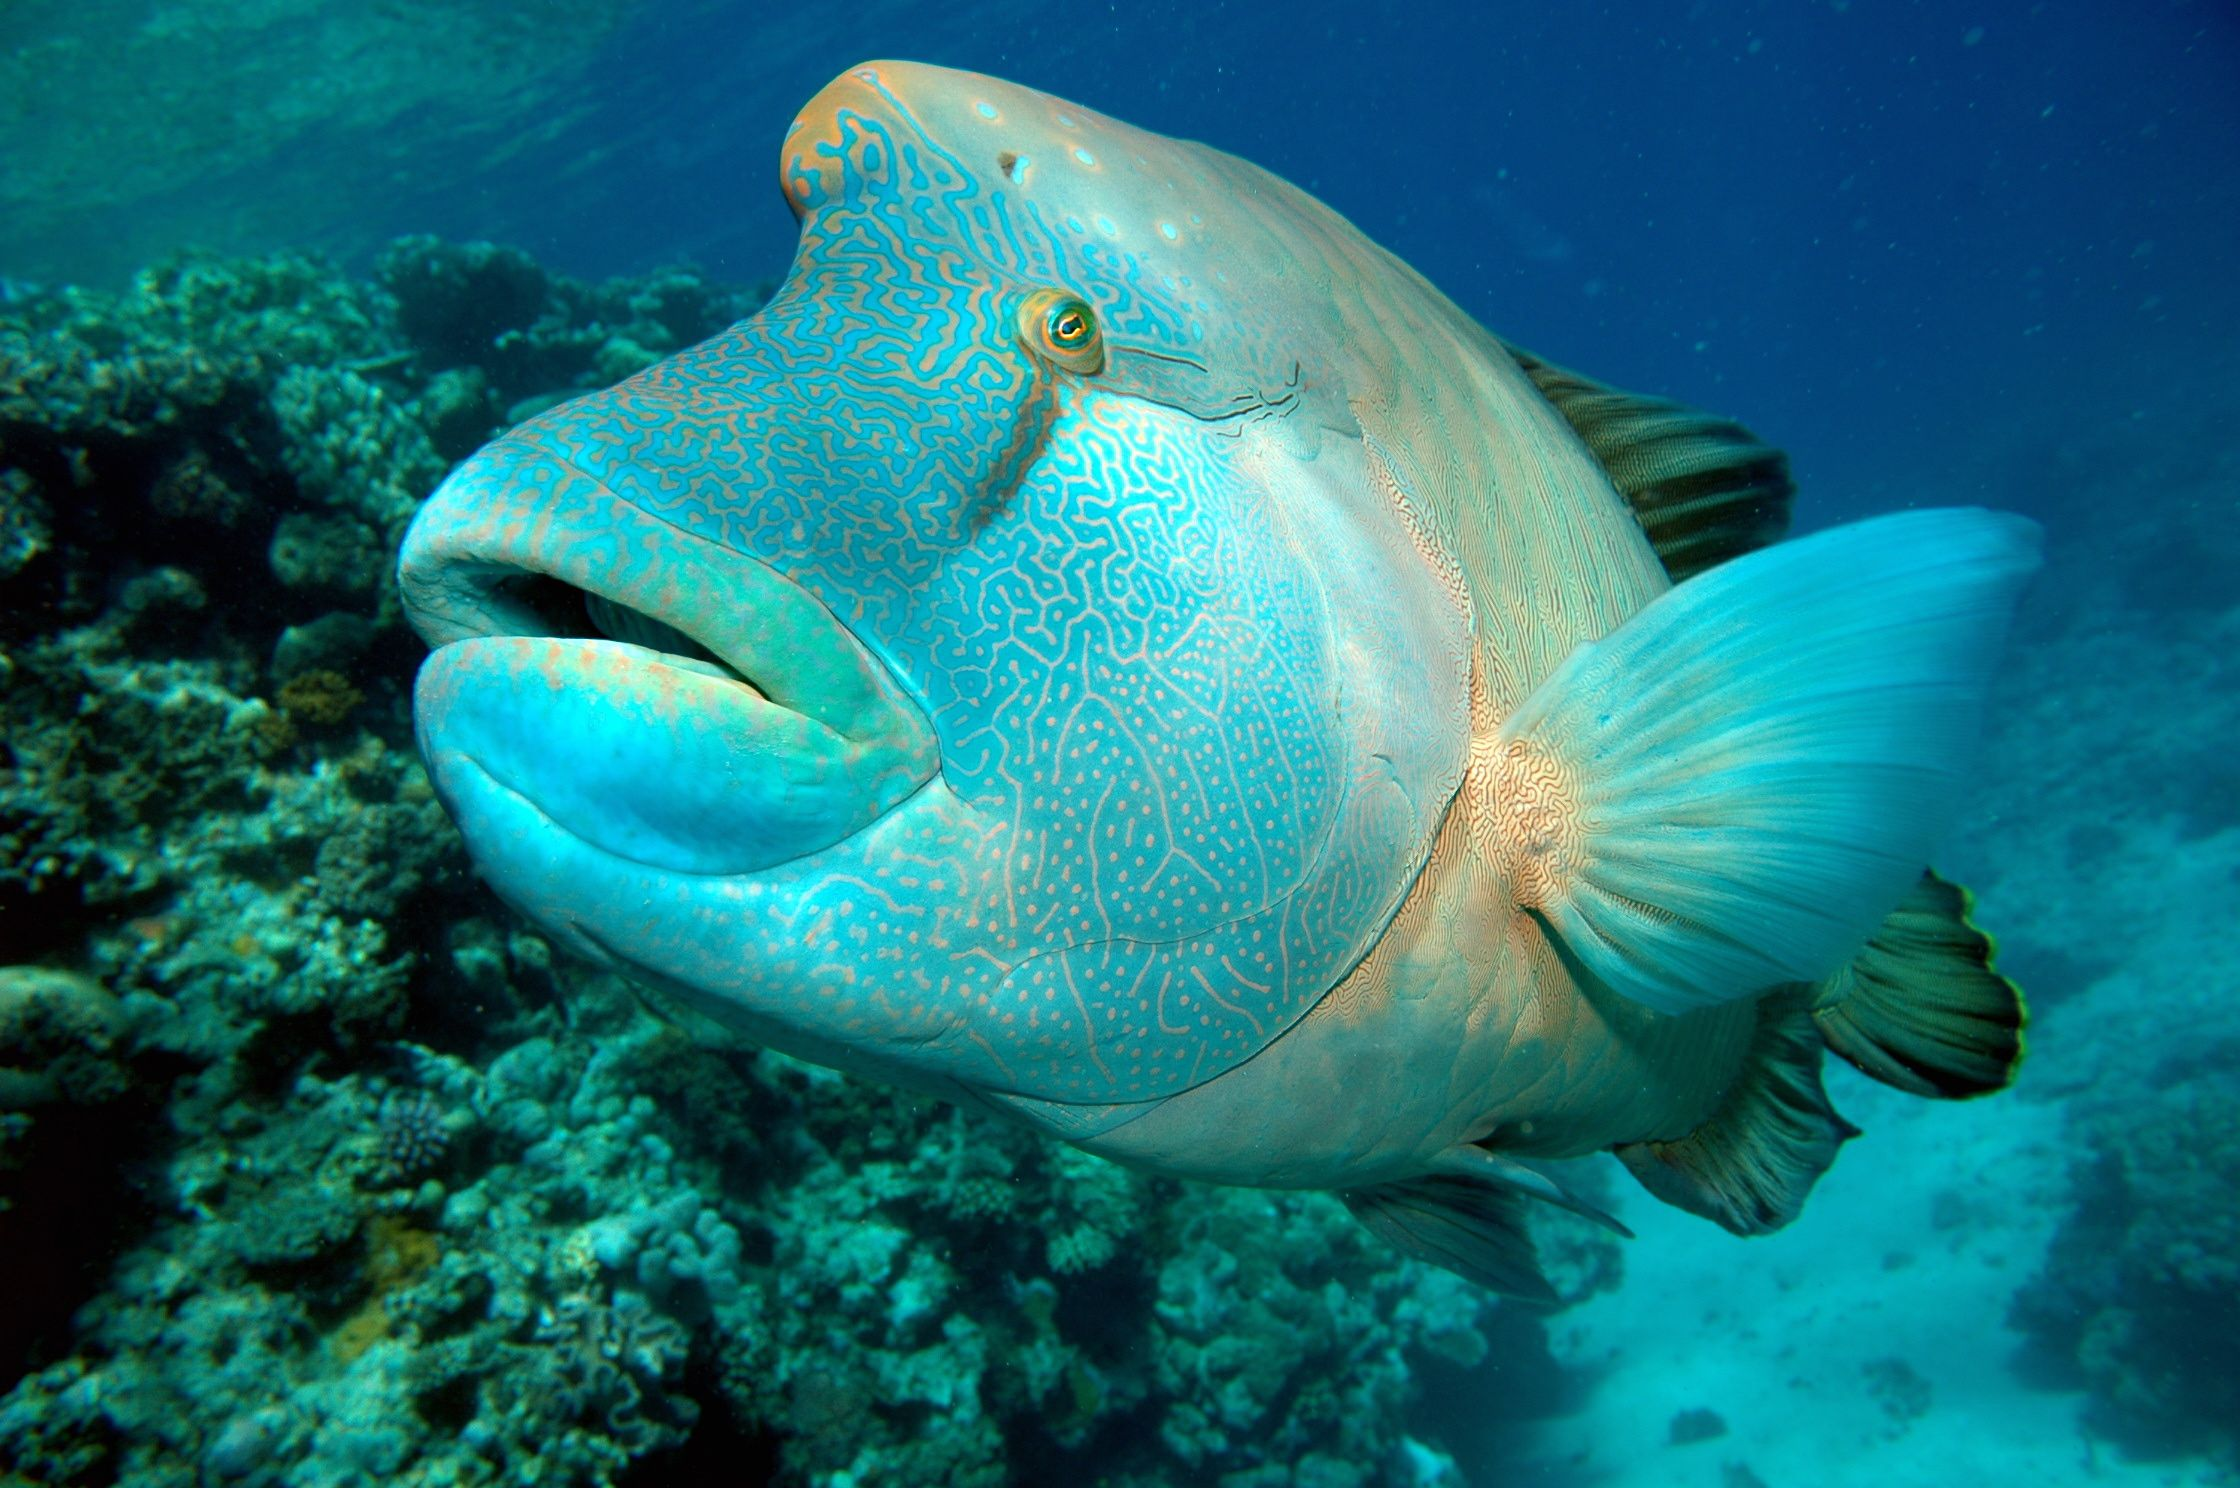 her name is Sarah and she lives in the Great Barrier Reef